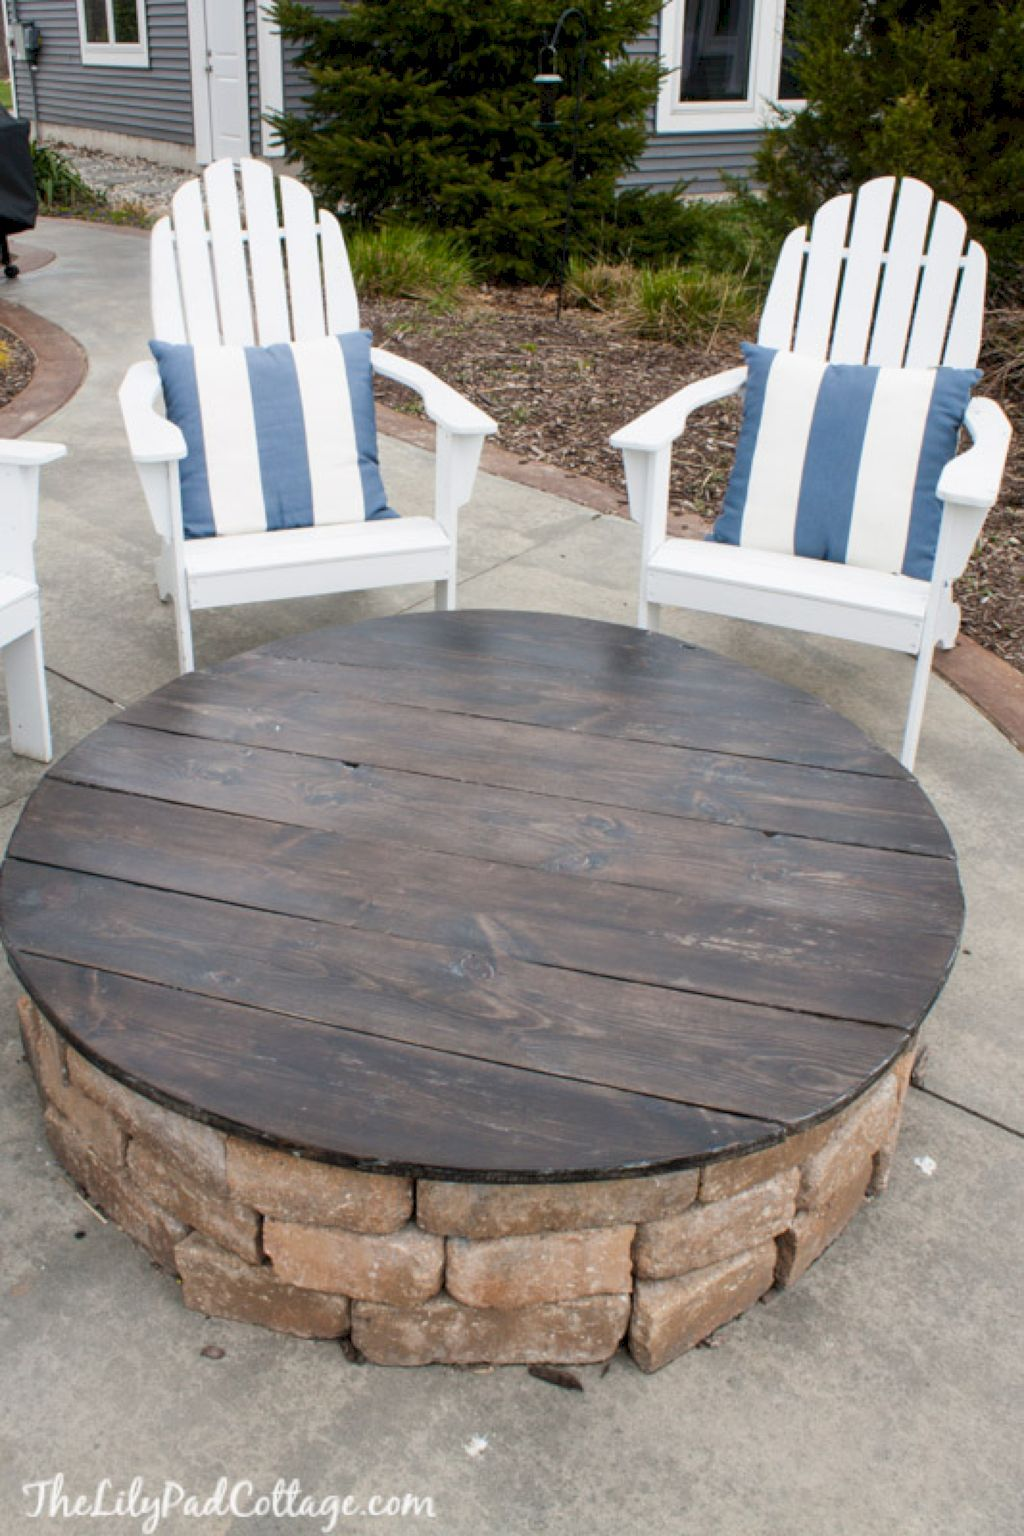 Awesome 46 Awesome Fire Pit Ideas For Your Backyard Https://homeylife.com